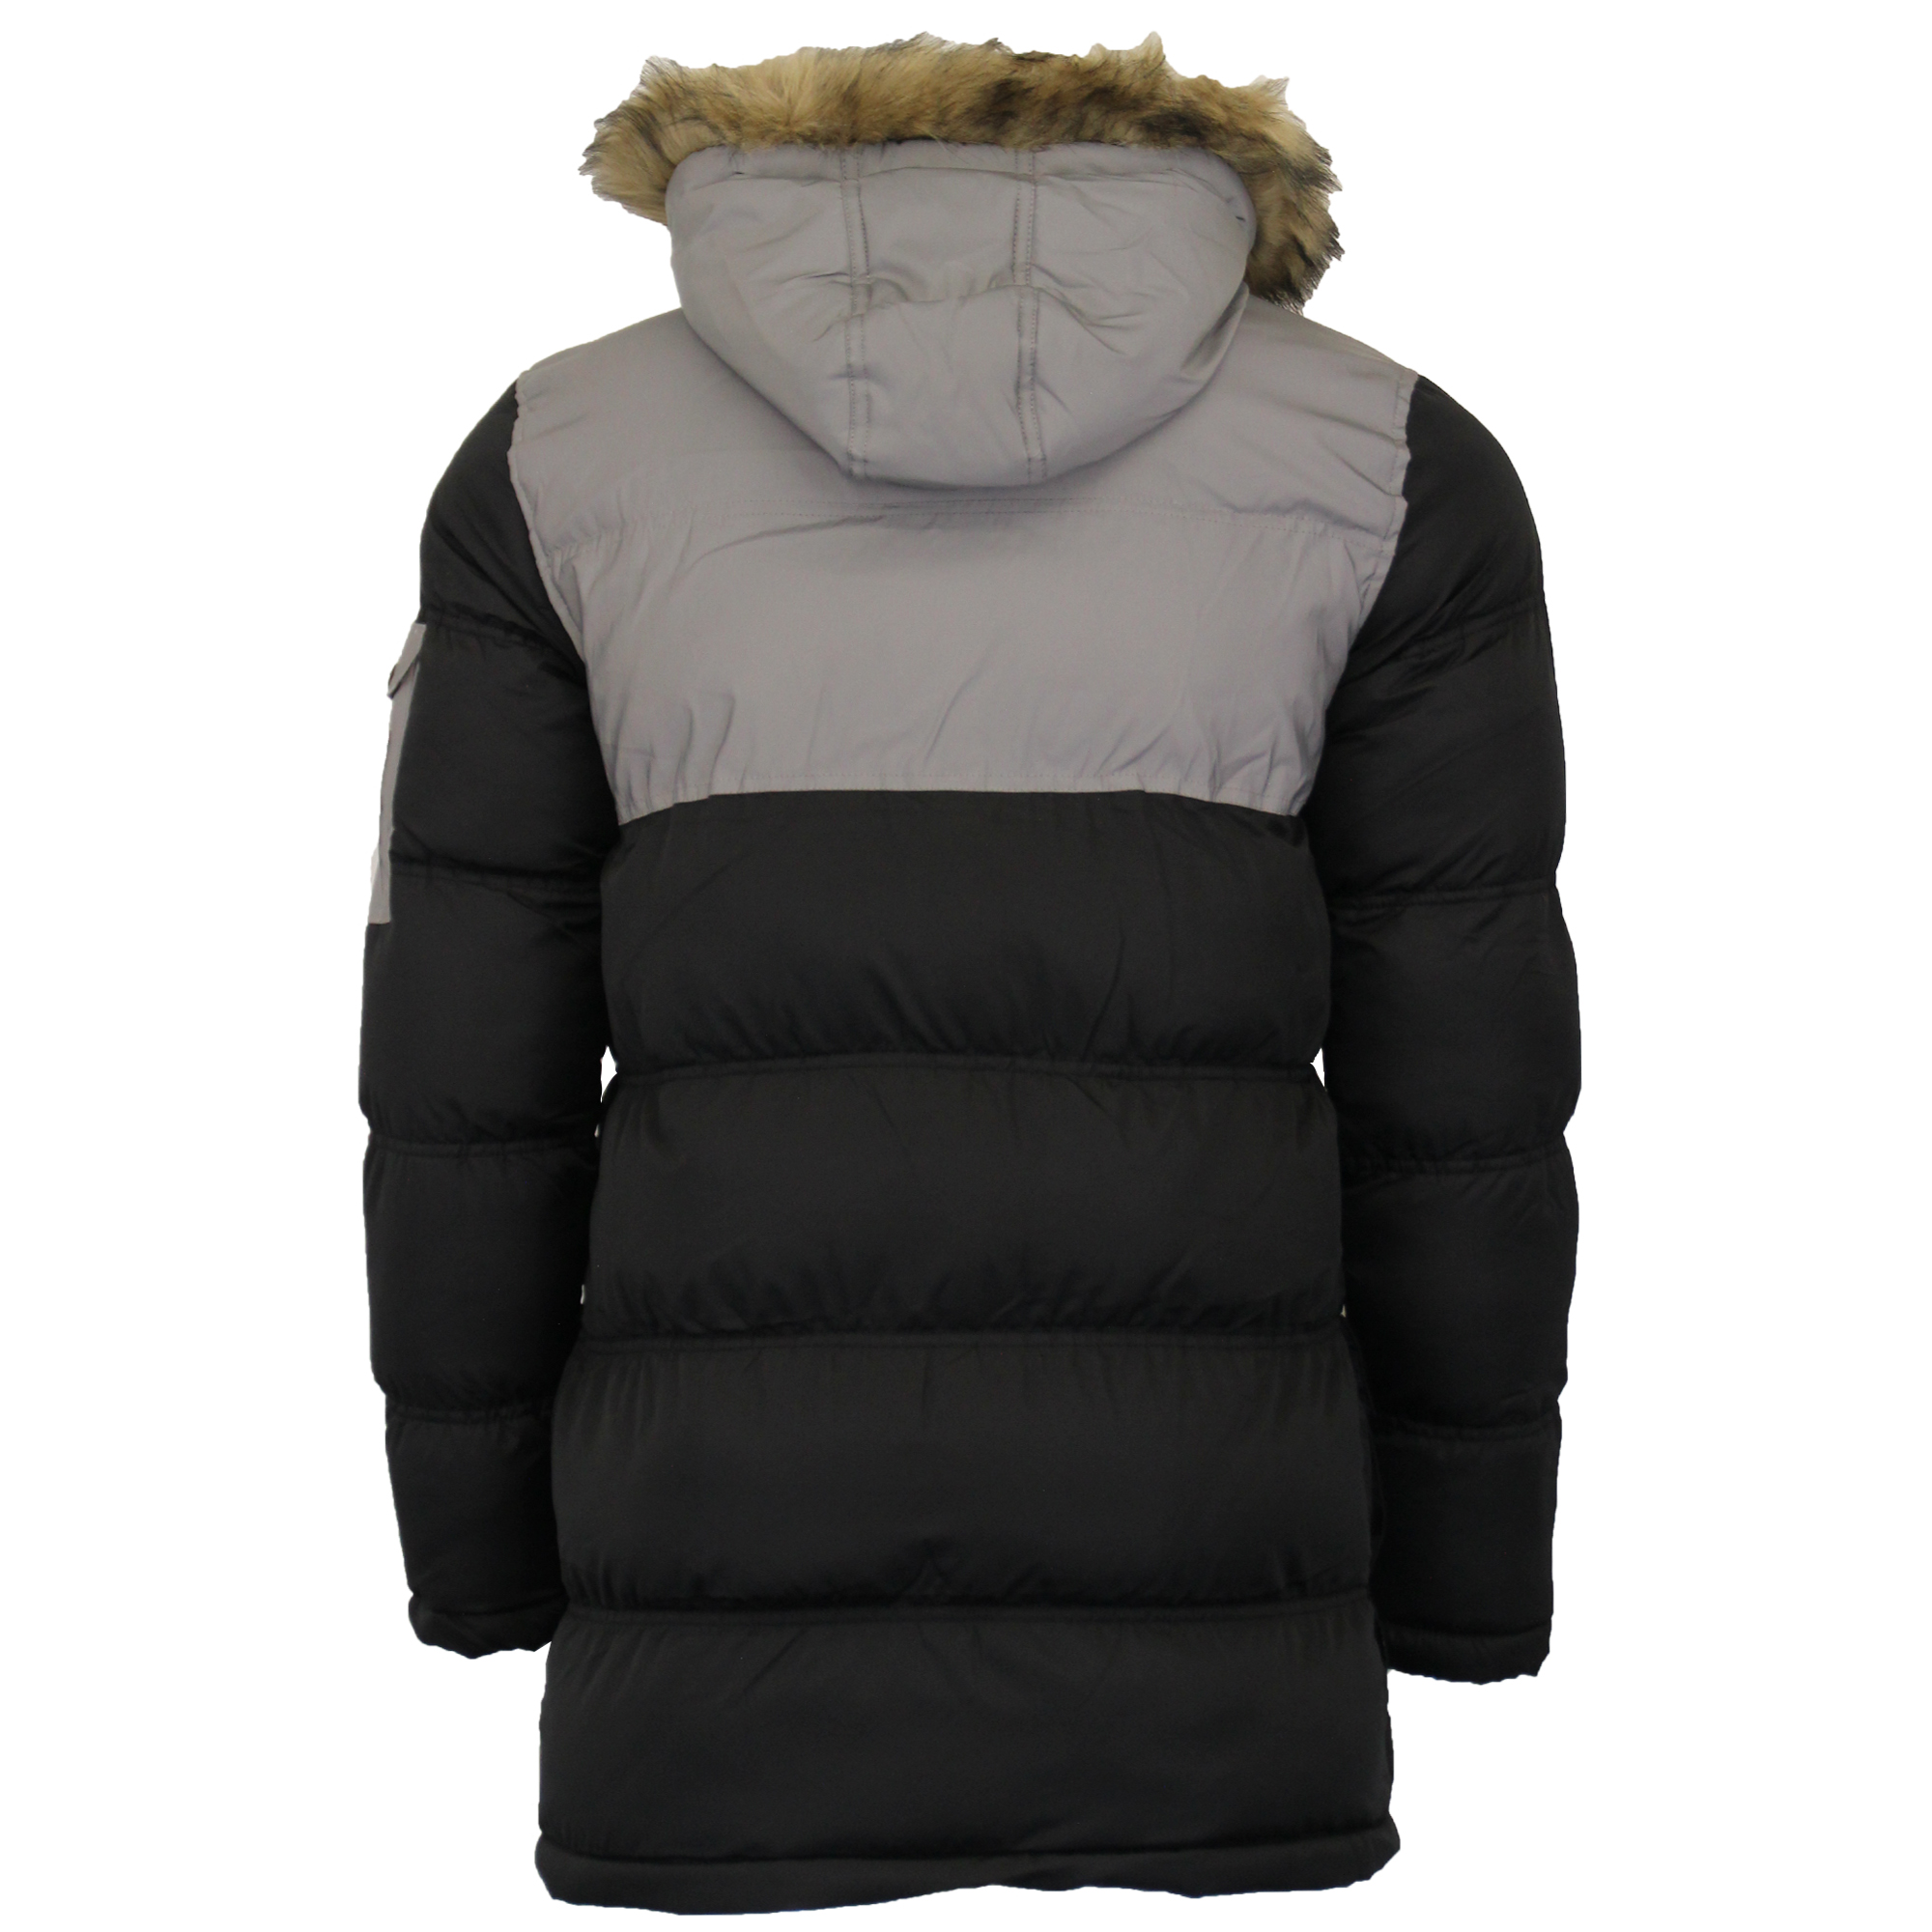 Mens-Reflective-Long-Bubble-Parka-Jacket-Brave-Soul-Coat-Hooded-Padded-Winter thumbnail 5